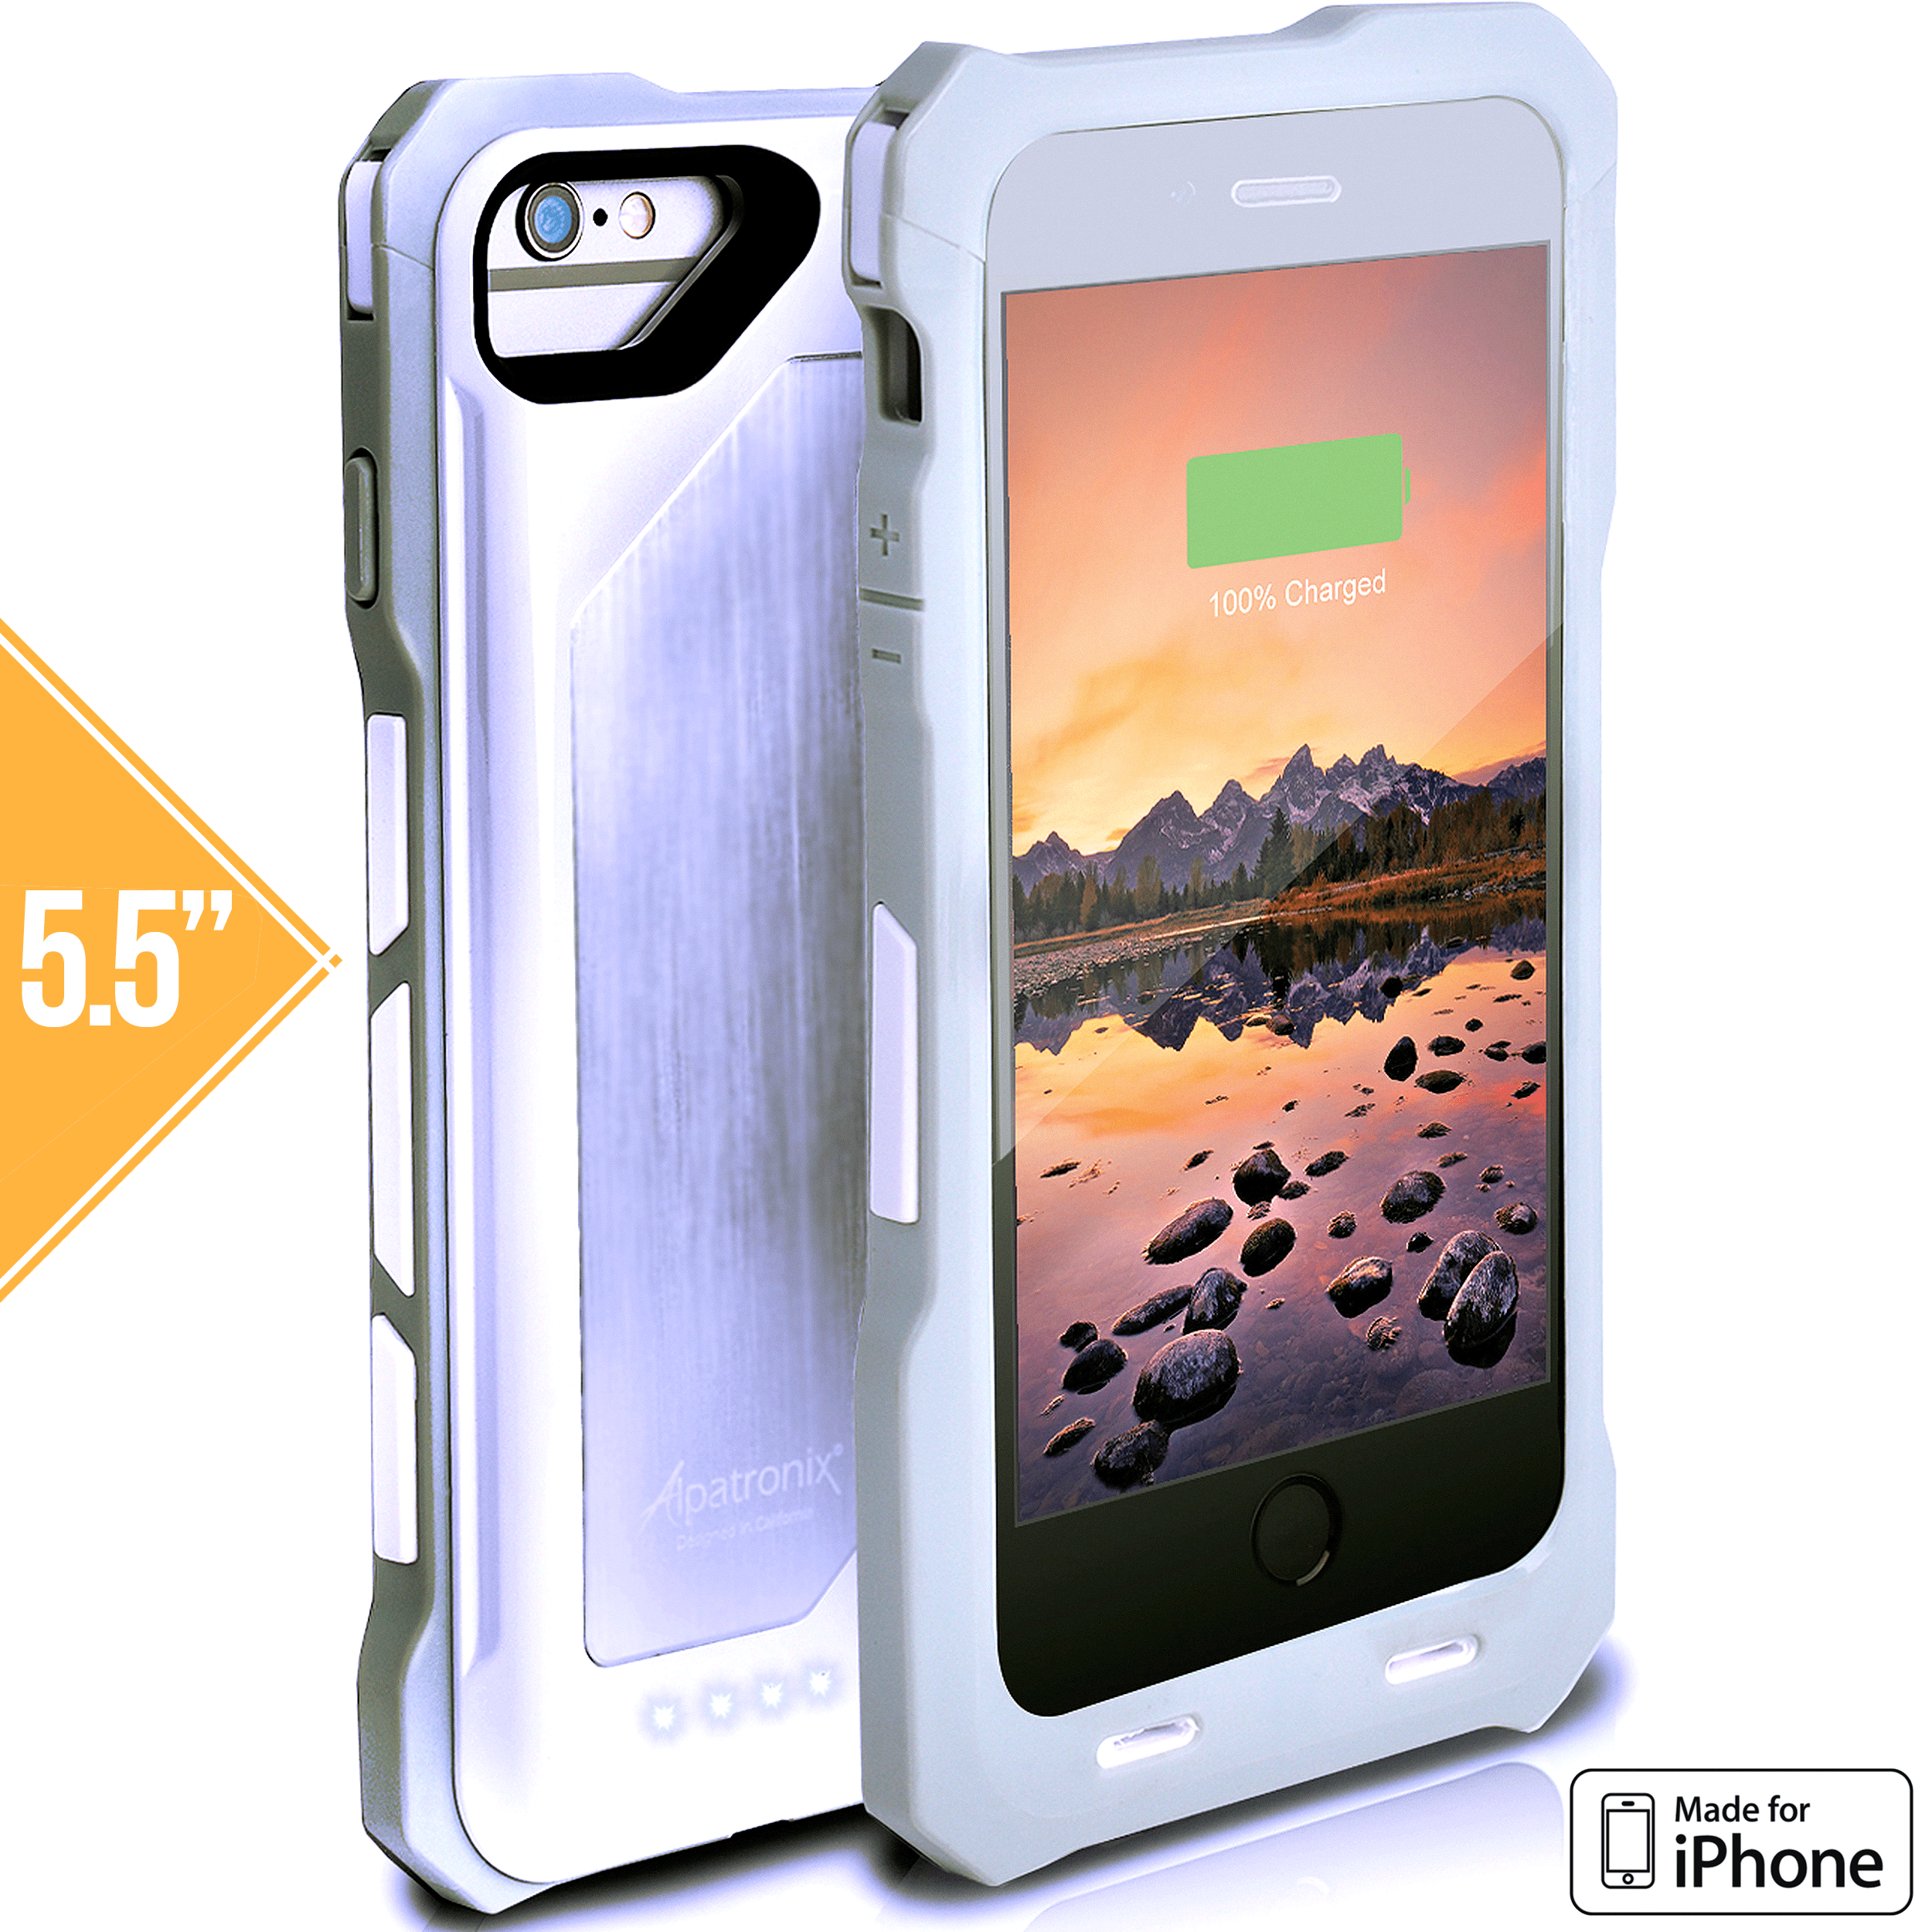 Alpatronix BX150plus 4000mAh Shockproof Battery Charging Case for iPhone 7 Plus, 6S Plus, 6 Plus